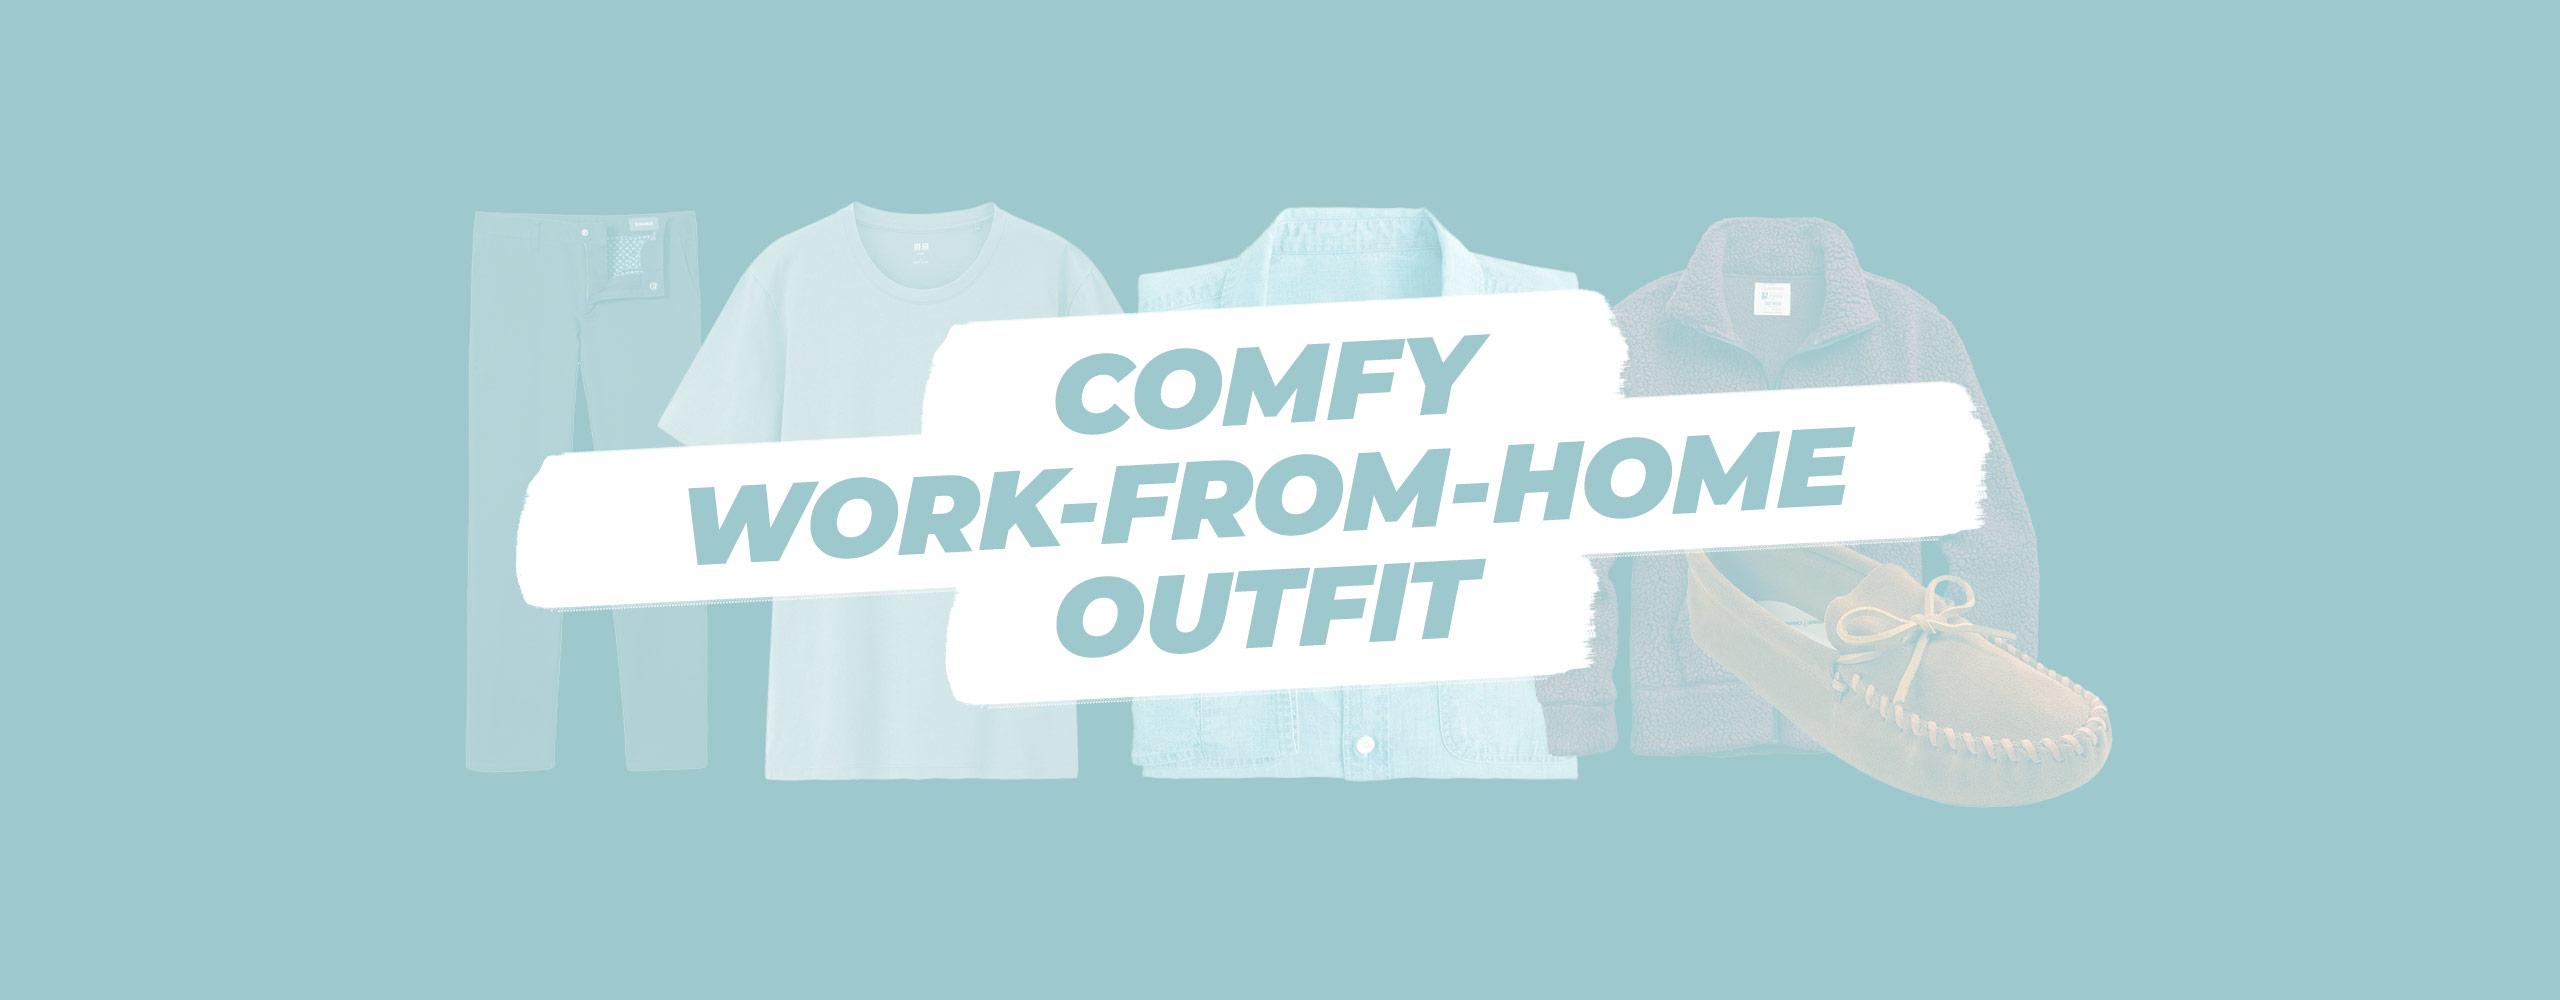 comfy work from home outfit article banner